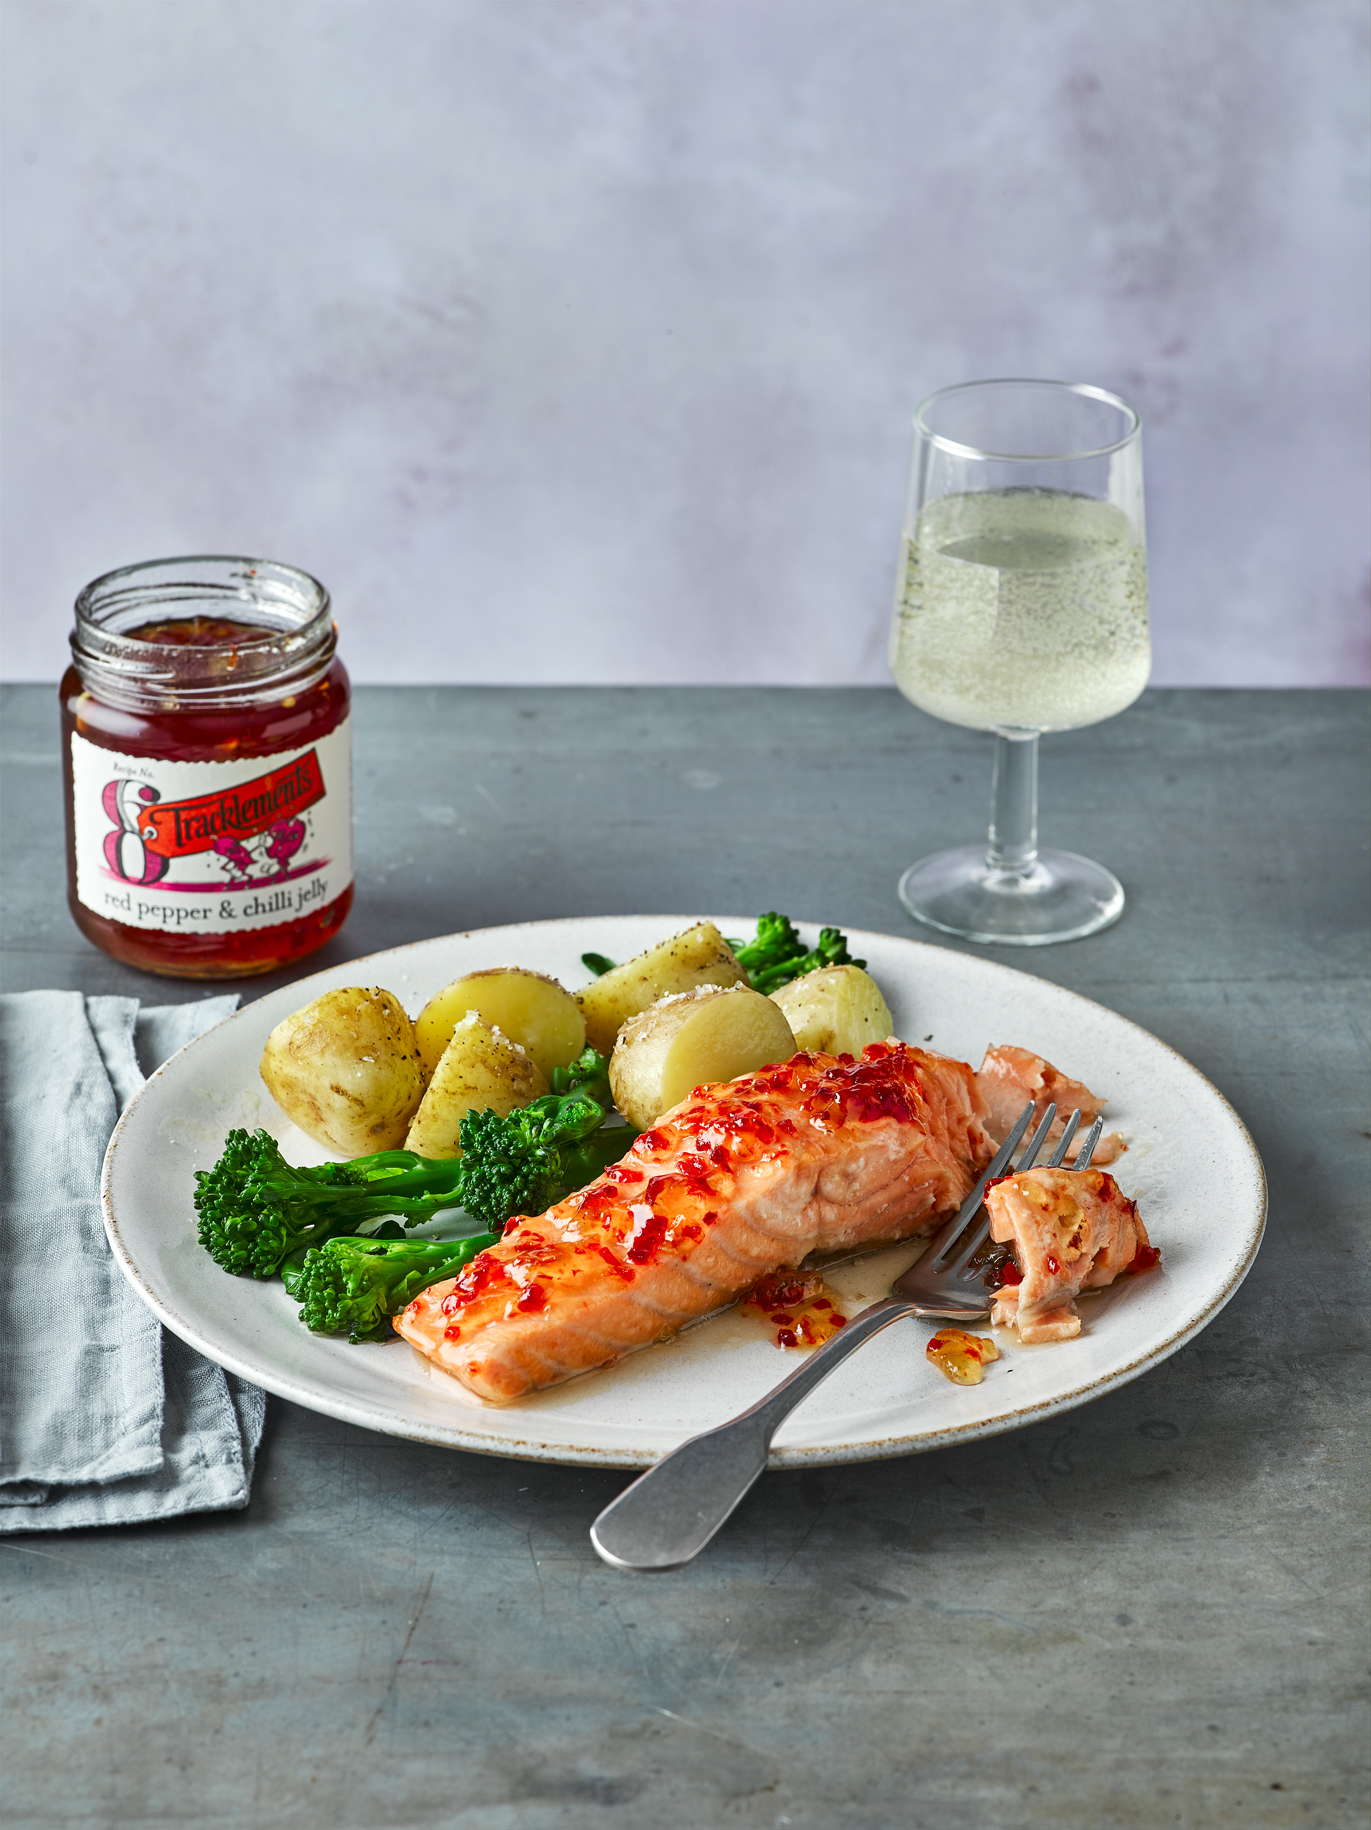 Baked Salmon with Red Pepper & Chilli Jelly